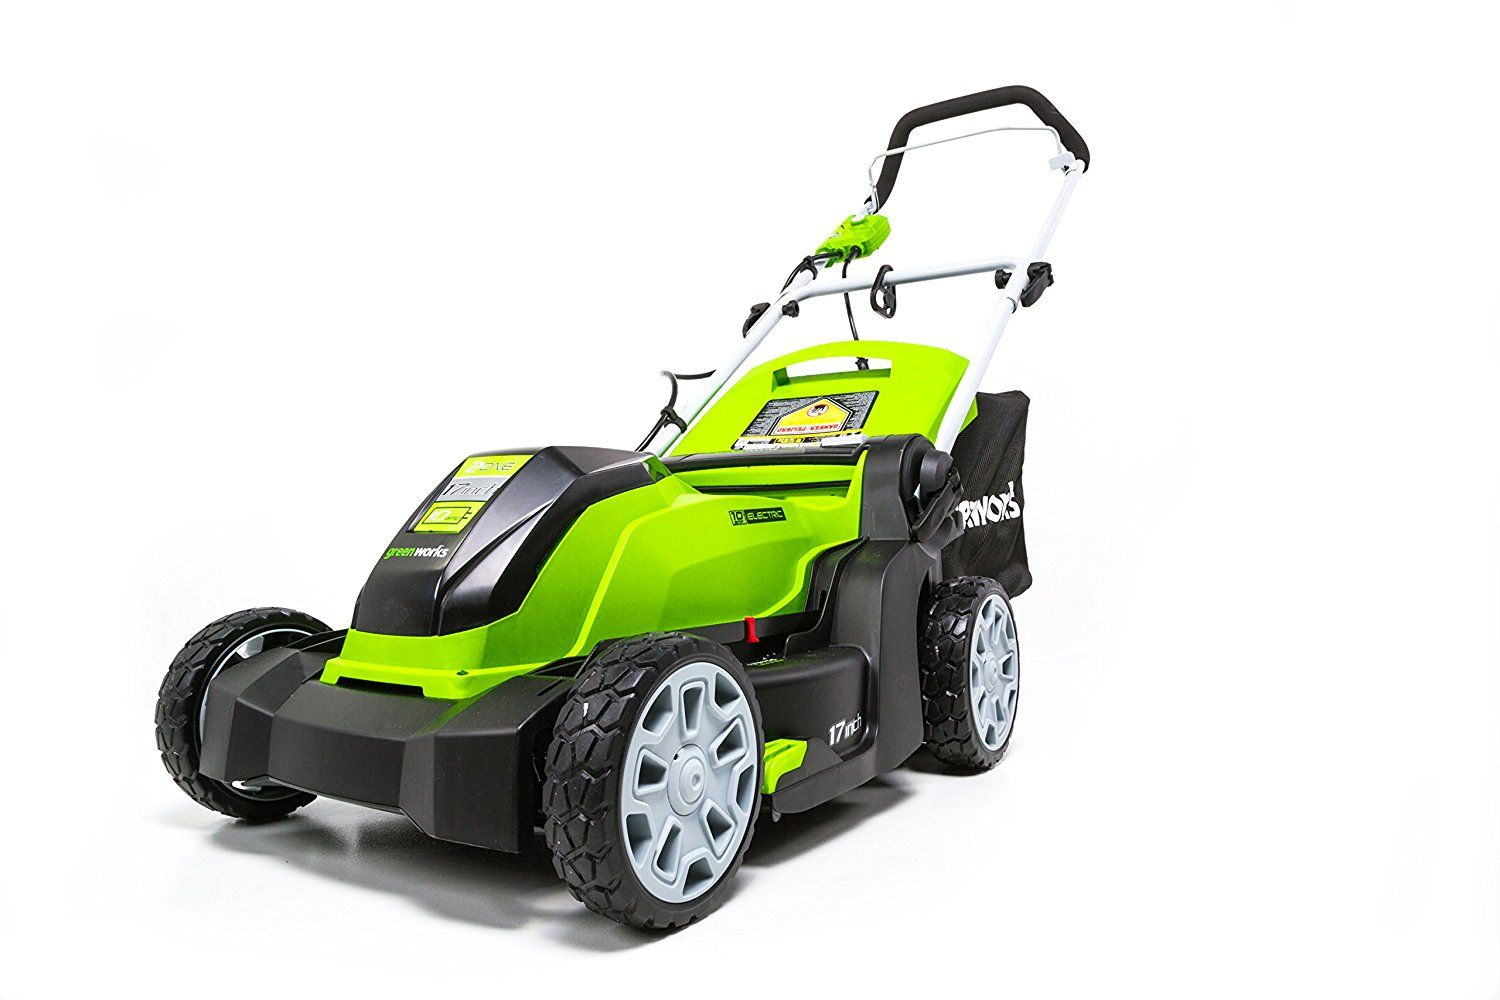 Electric Lawn Mower Sale Best Push Lawn Mower 2019 Riding Lawn Mower Best Lawn Mower Push